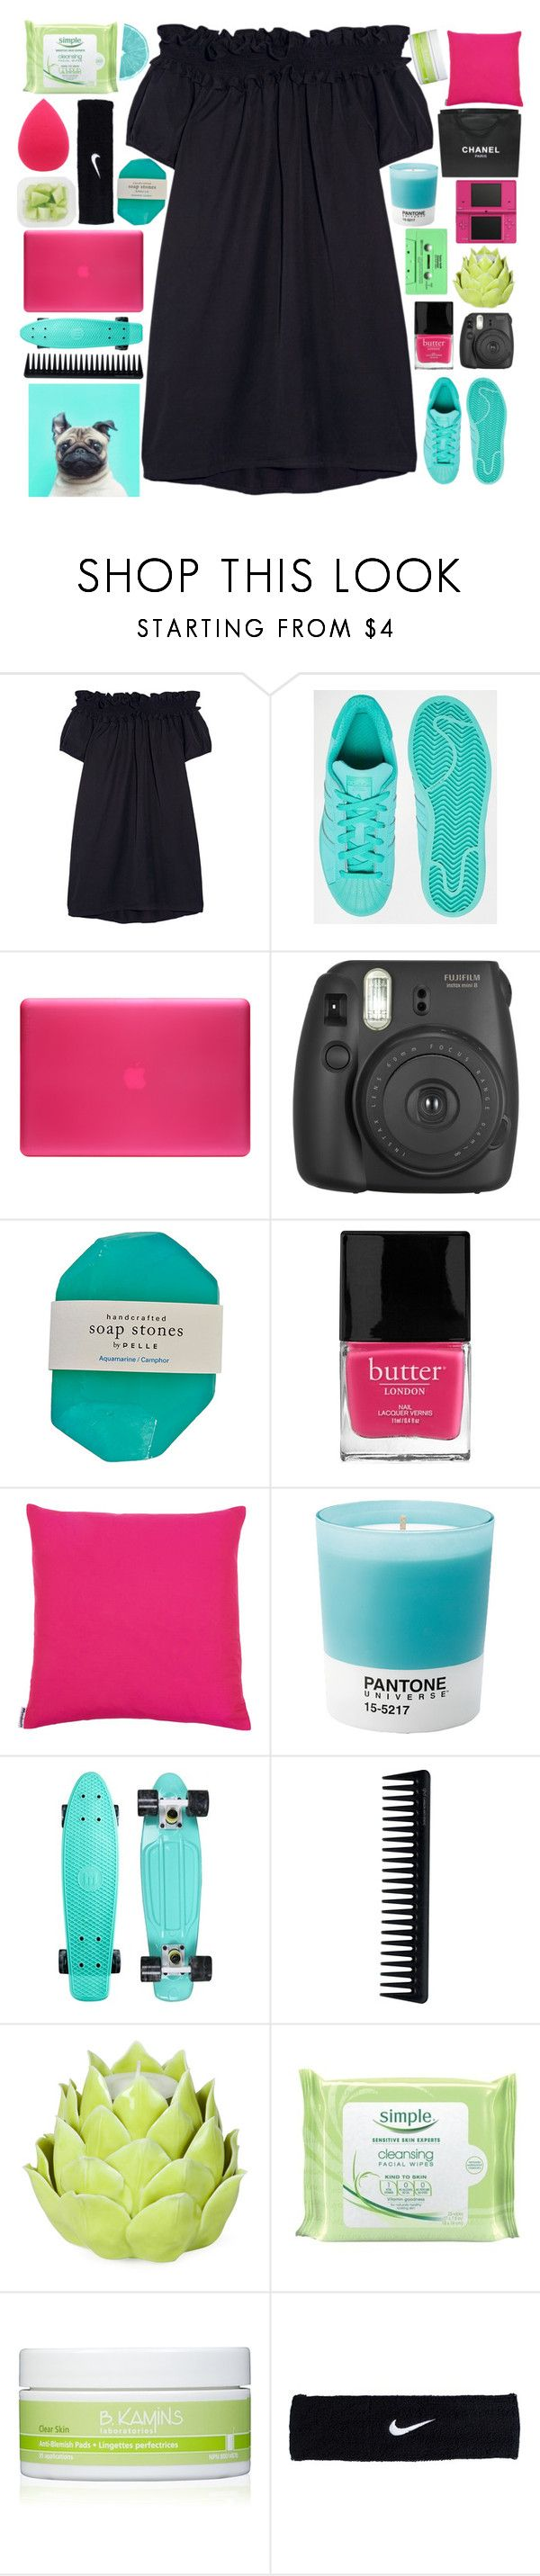 """""""In The Middle Of The Night, In My Dreams"""" by theafergusma ❤ liked on Polyvore featuring Clu, adidas, Incase, Fujifilm, Butter London, Pantone, Nintendo, GHD, Chanel and Zara Home"""